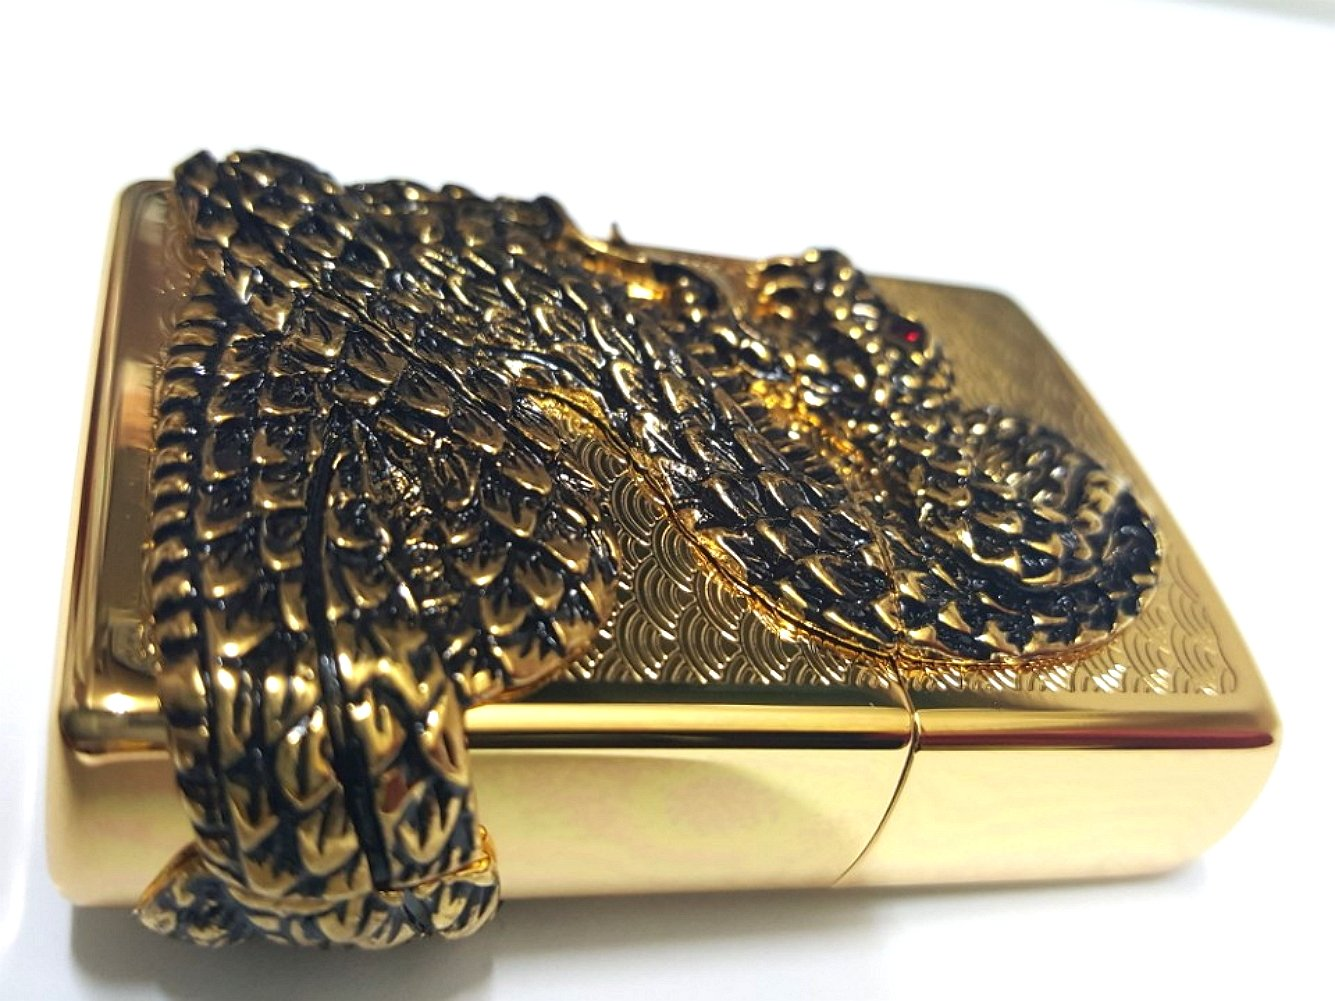 Zippo Snake Coil Gold Lighter / Genuine Authentic / Original Packing (6 Flints set Free Gift) by Zippo (Image #4)